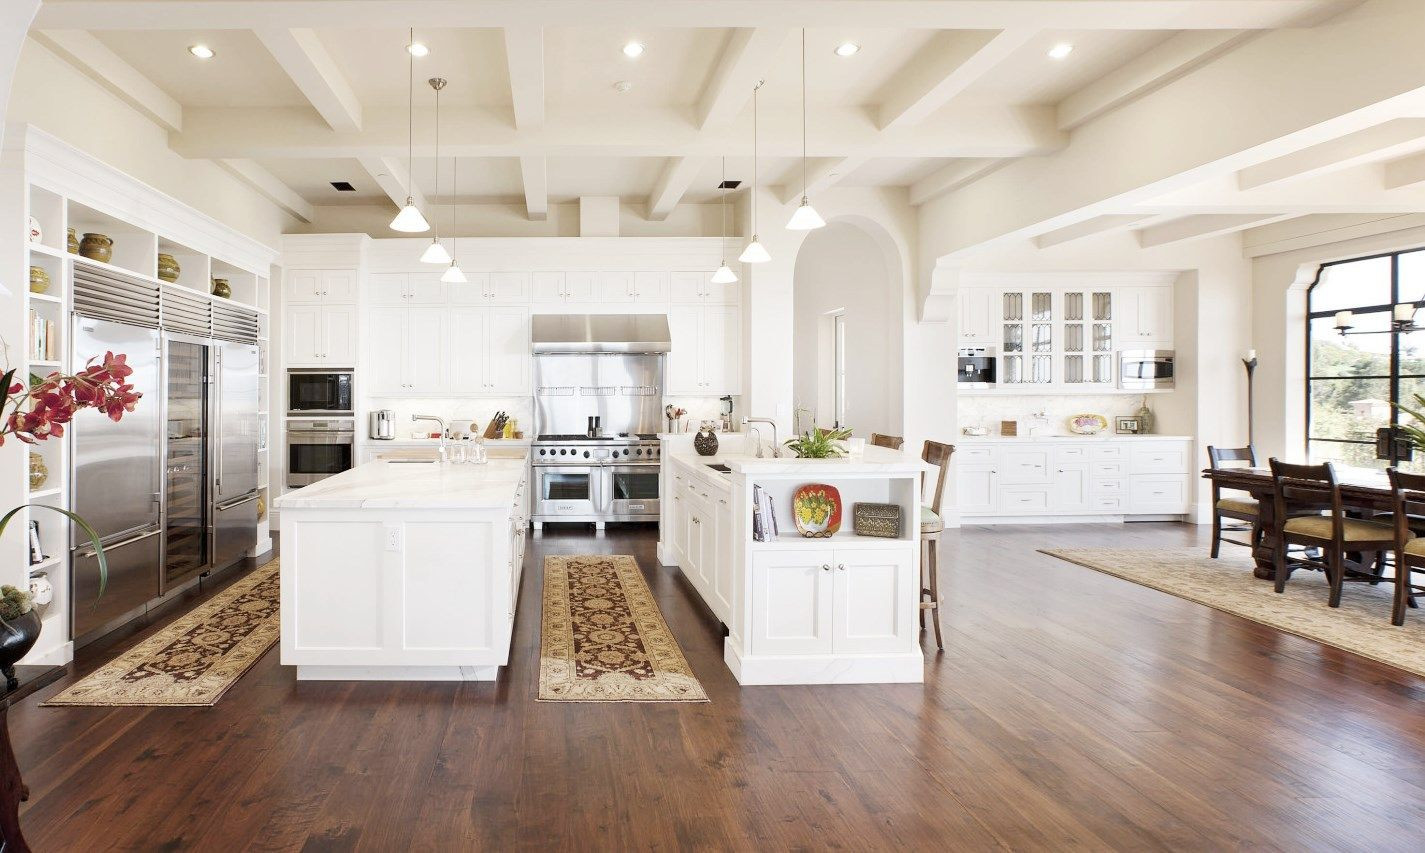 Bj Hardwood Flooring Of 45 Million Montecito Mansion See This House Kitchens Breakfast Pertaining to Santa Barbara Estate Kitchen Double island